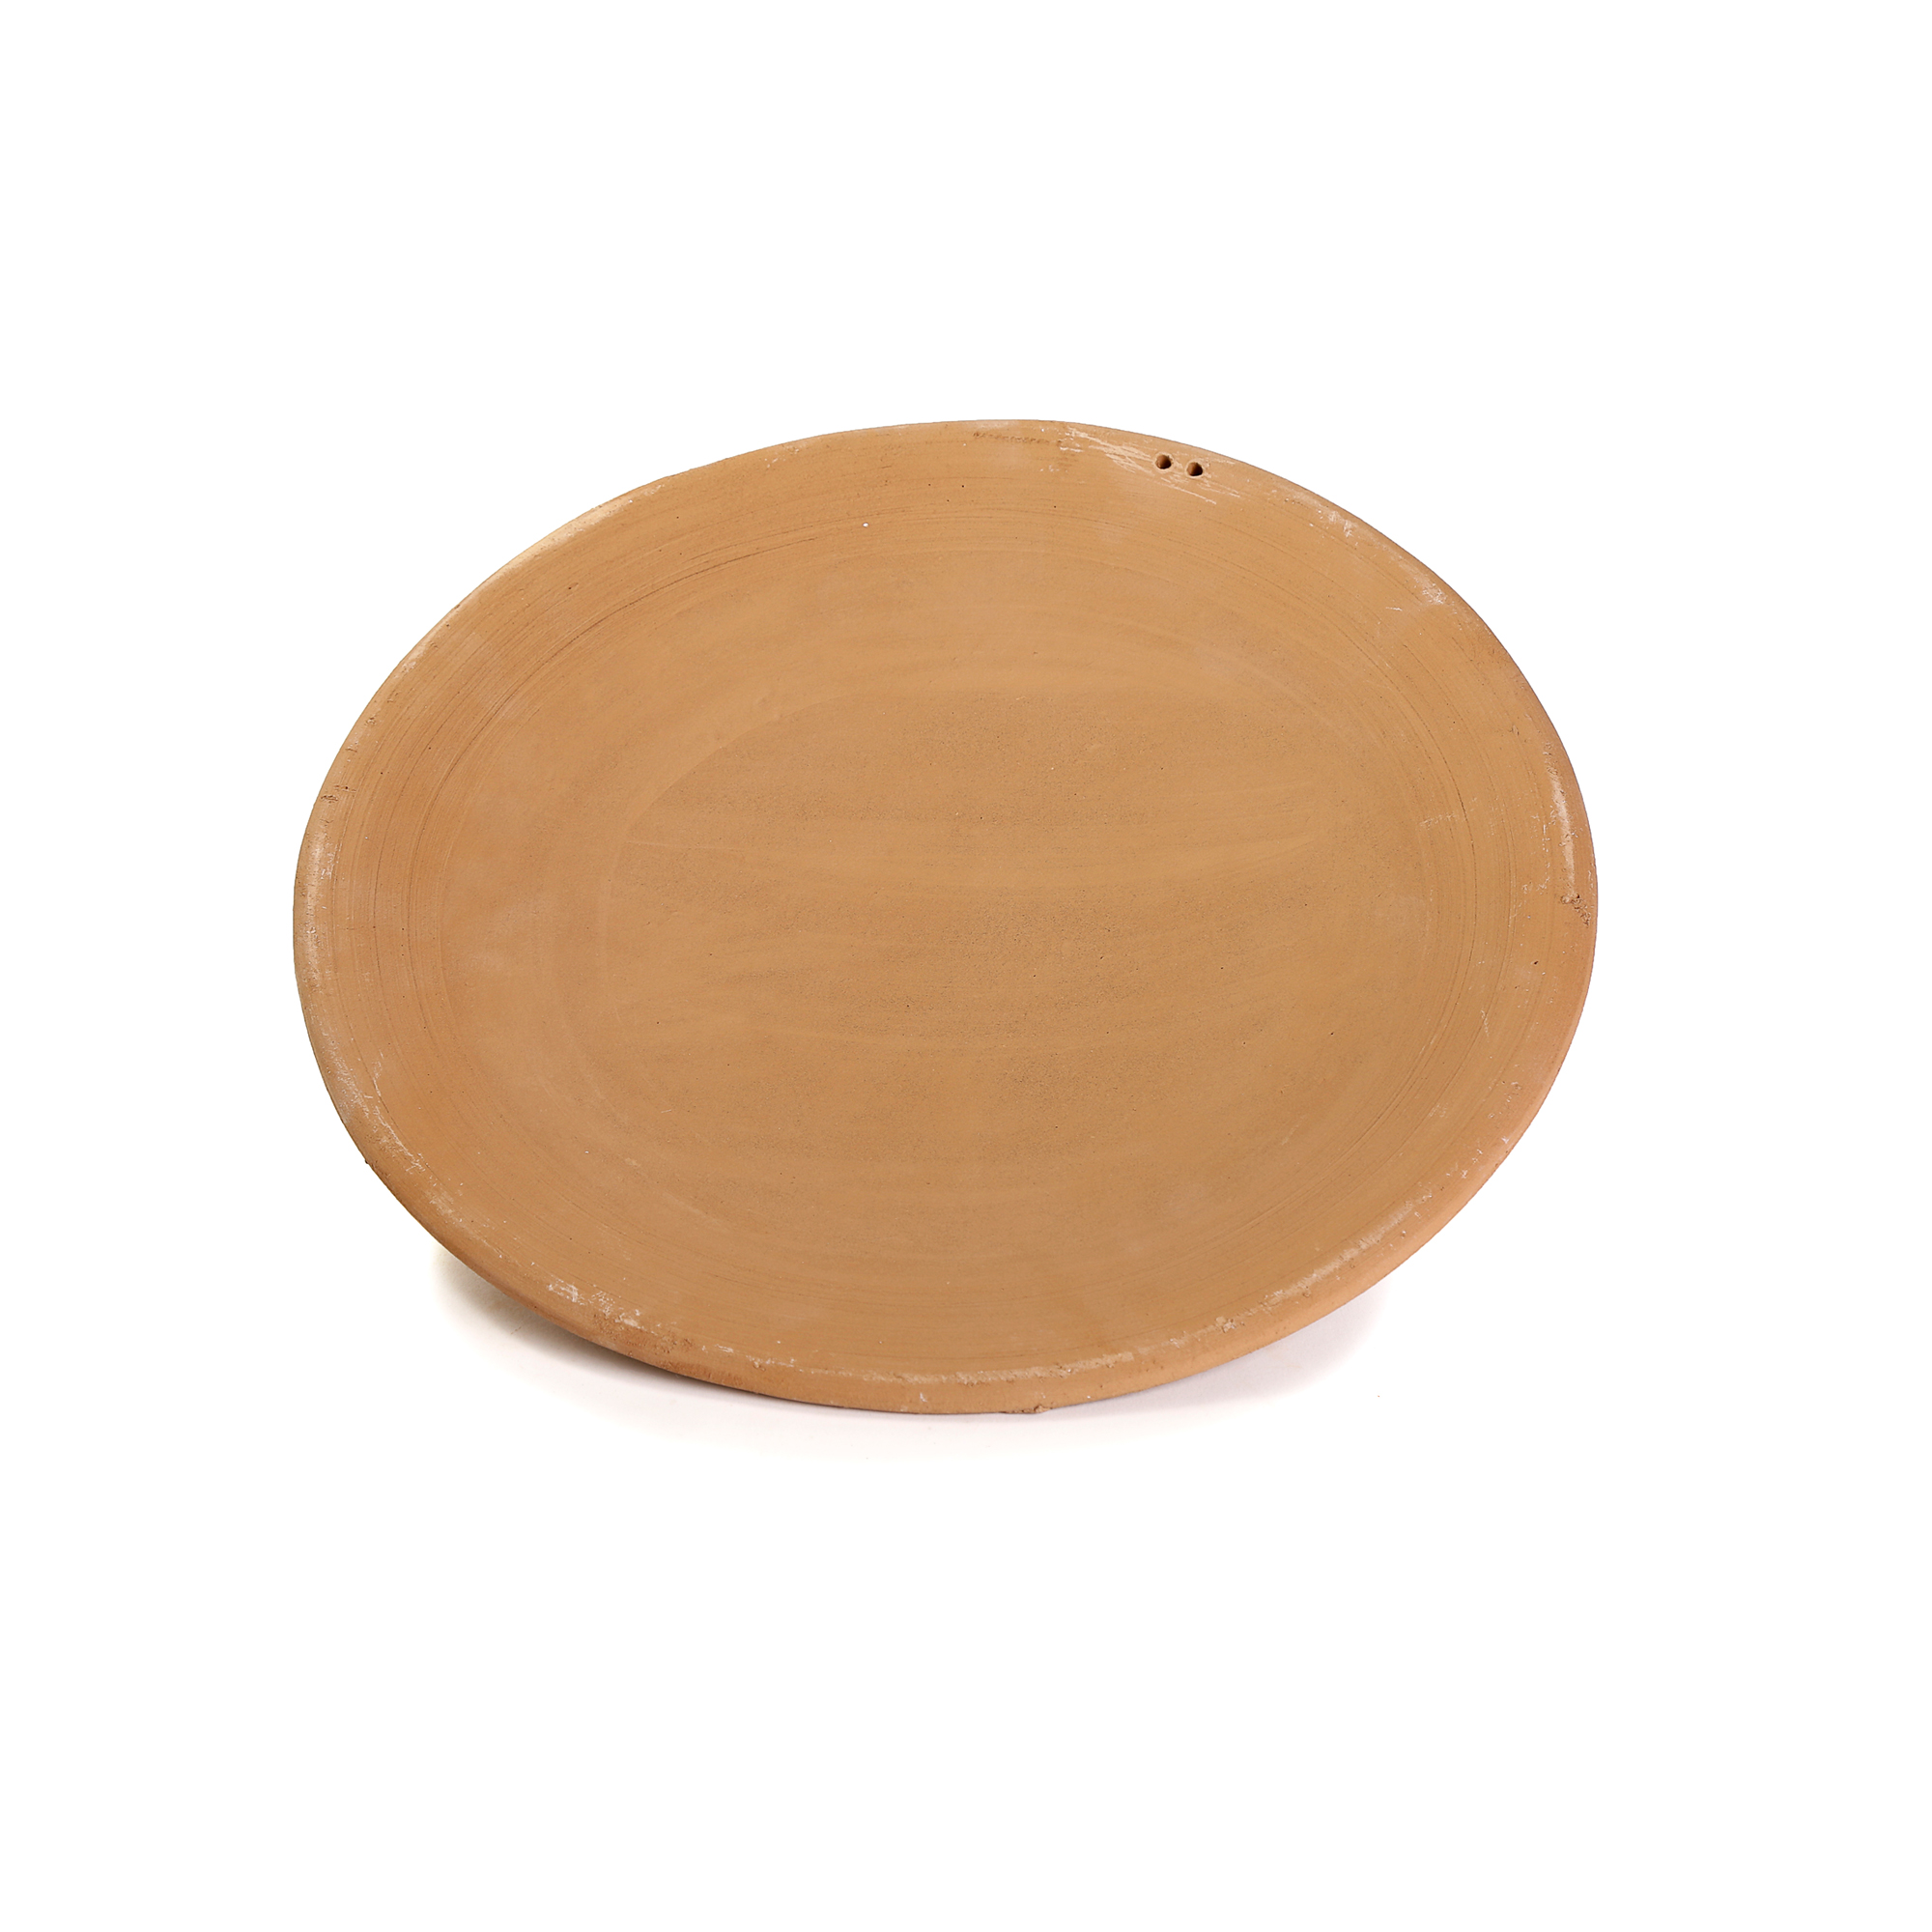 Mexican Clay Comal - Medium